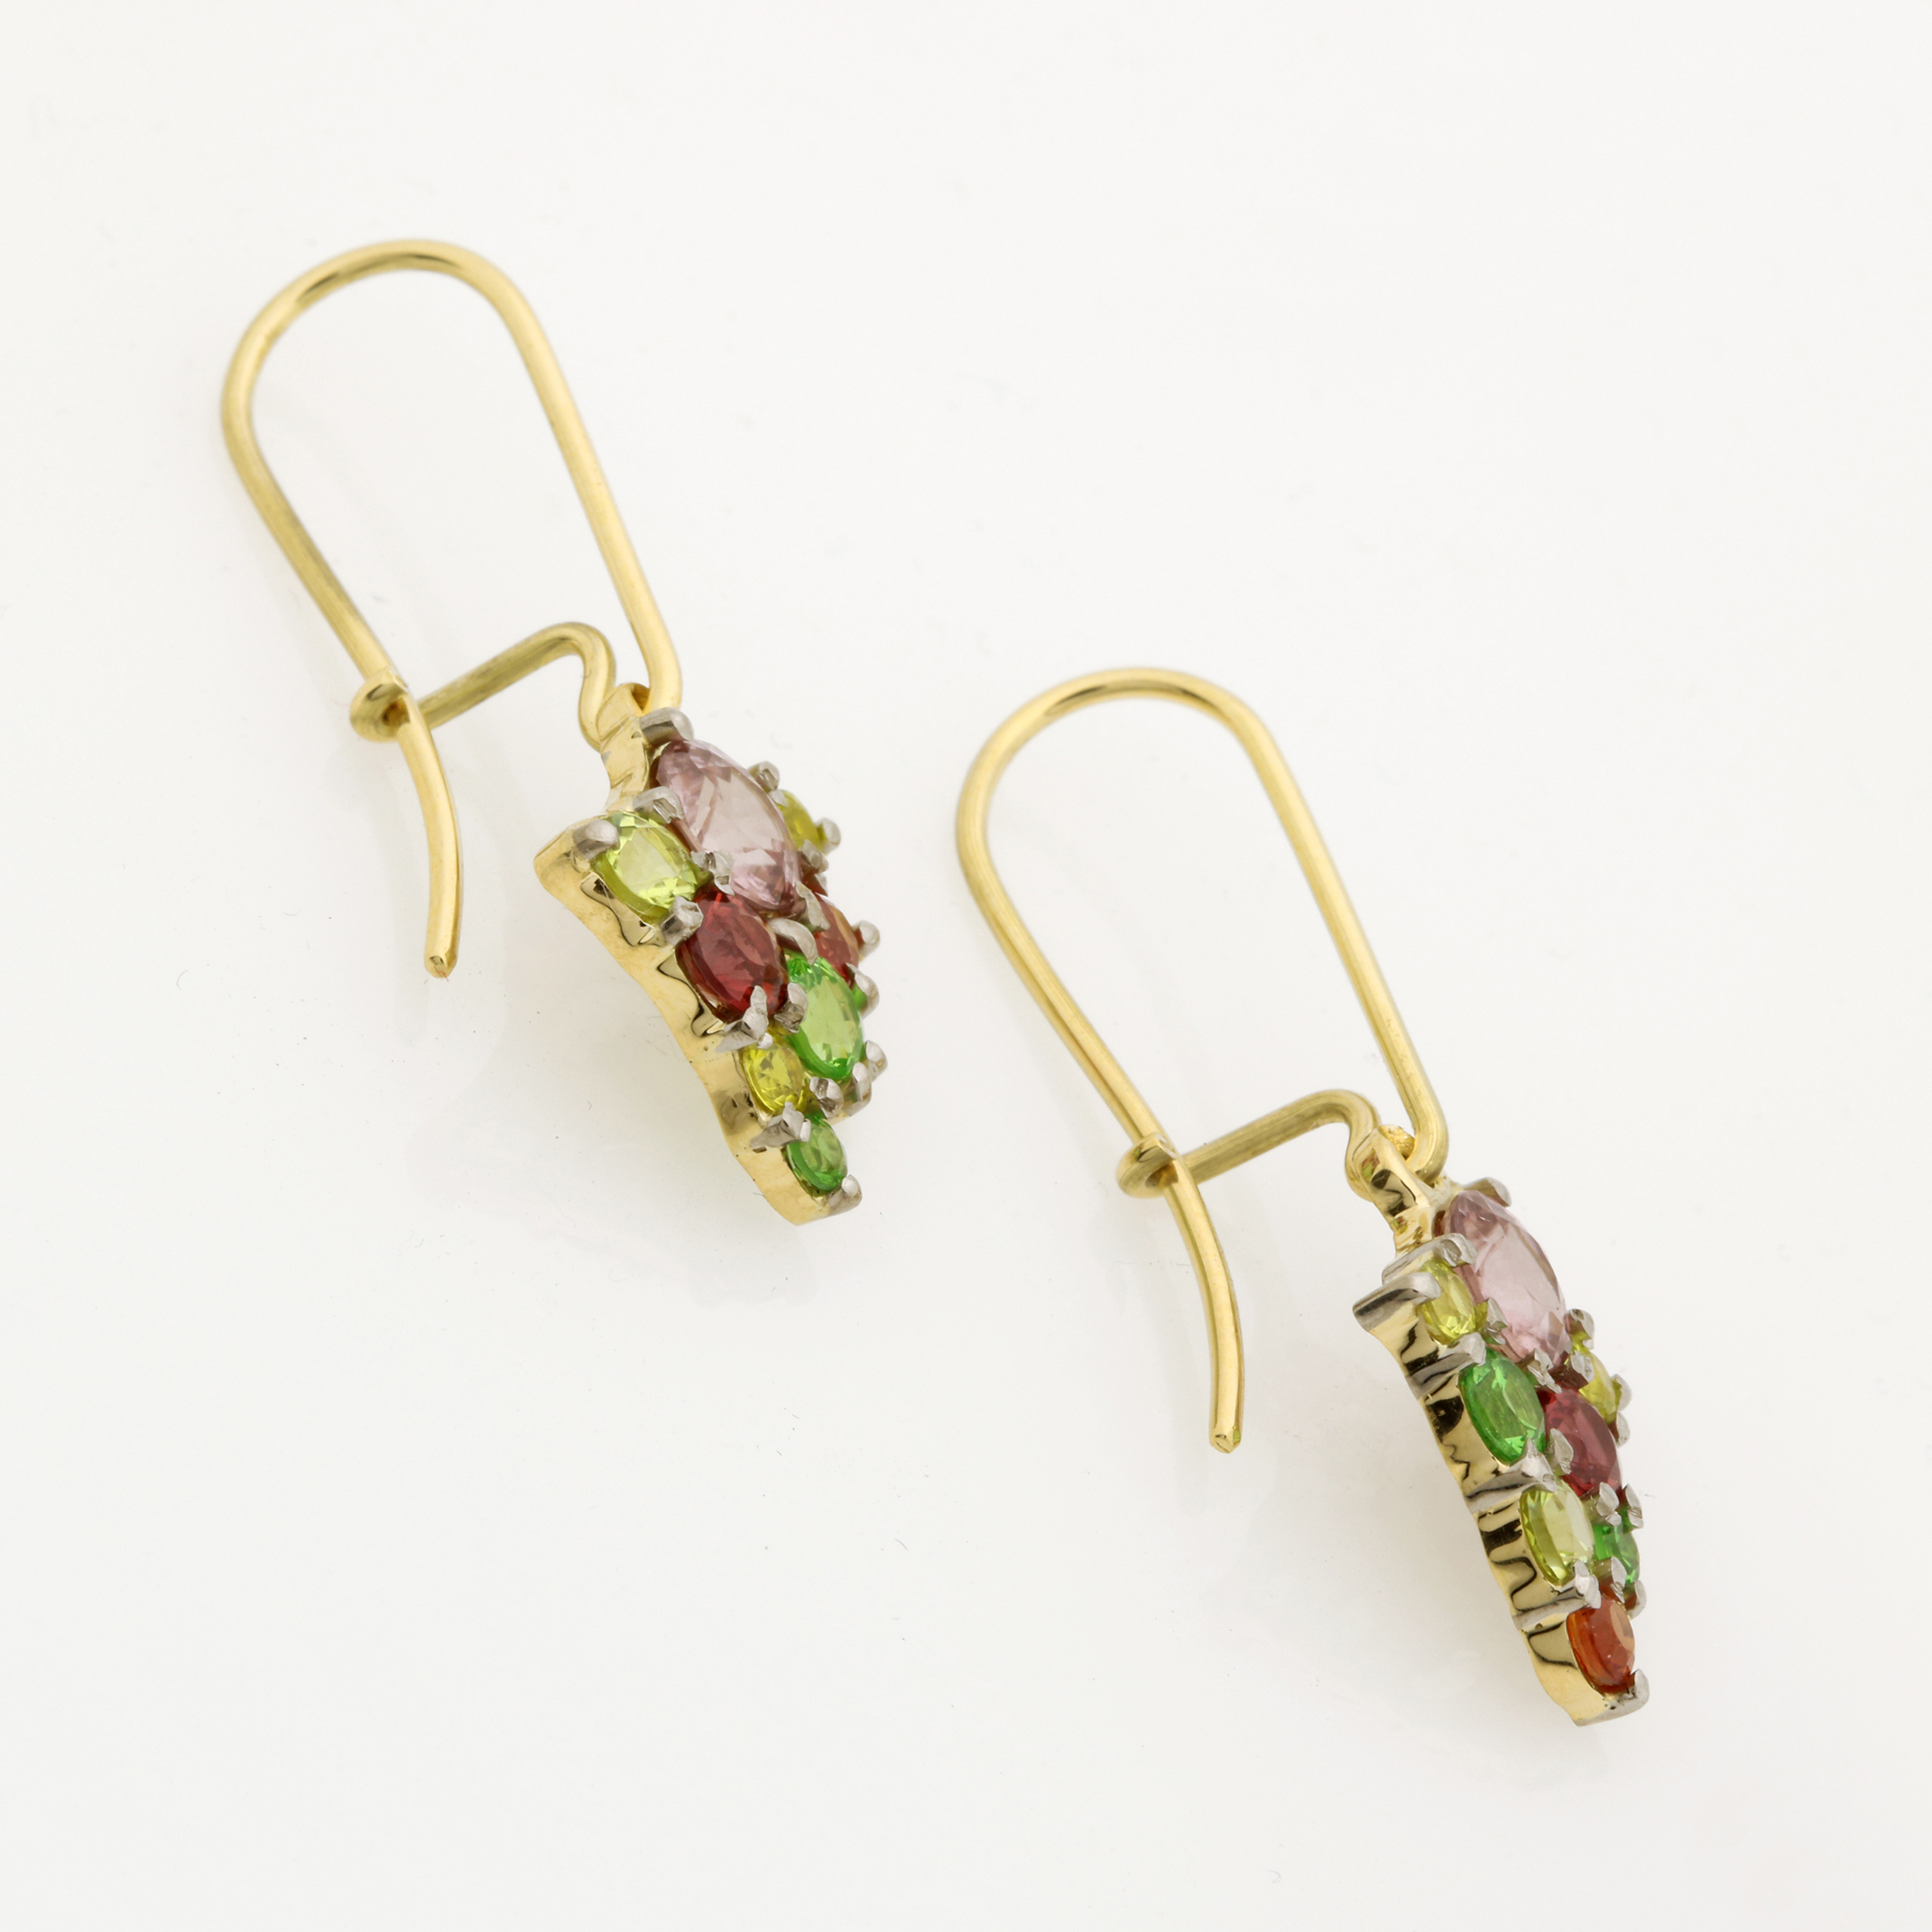 One pair of Ladies handmade 18ct Yellow and White Gold, multi-coloured Gemstone Earrings